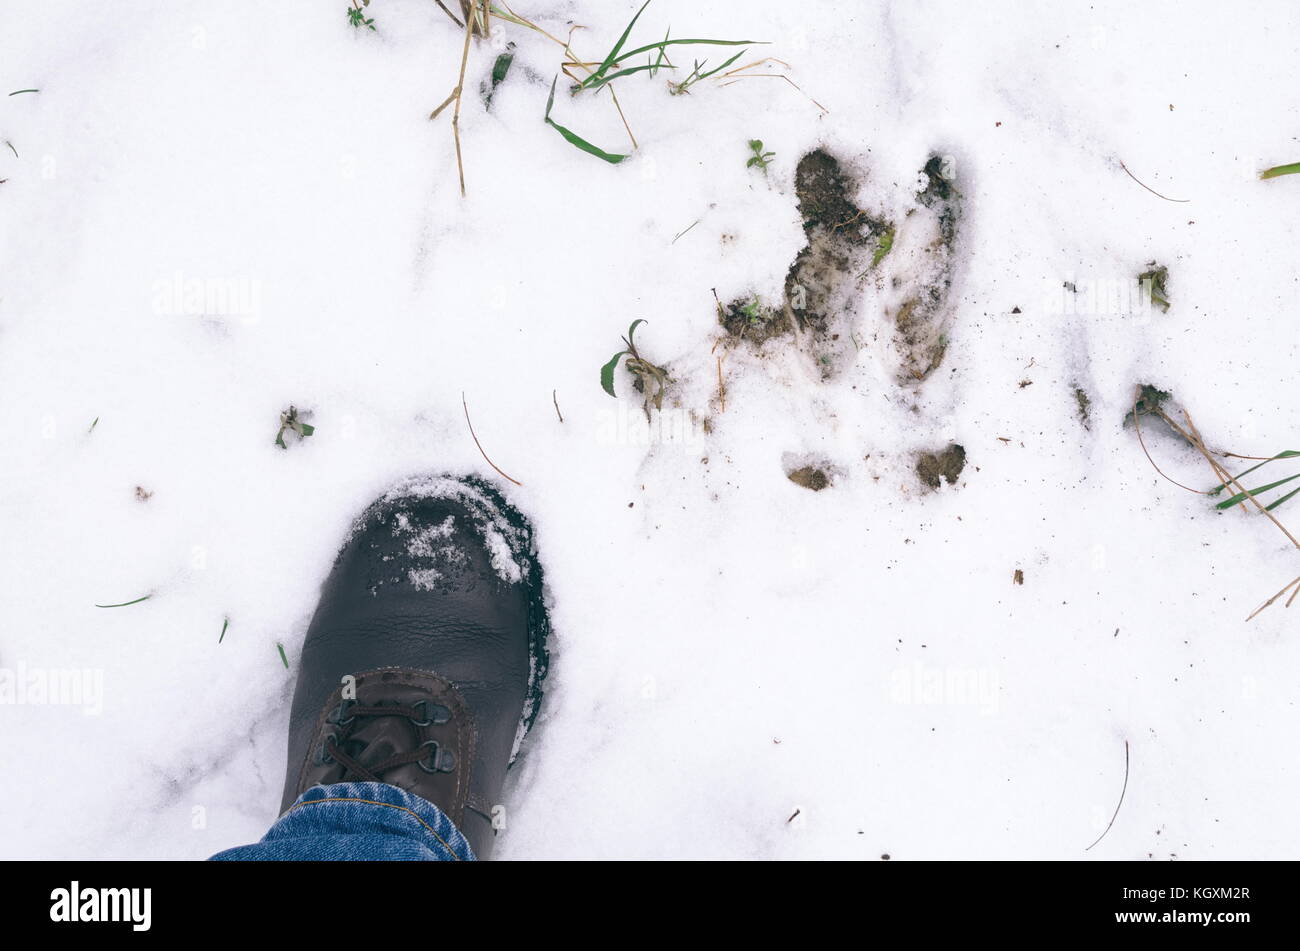 Boar Footprint and Man's Left Foot in the Snow - Stock Image